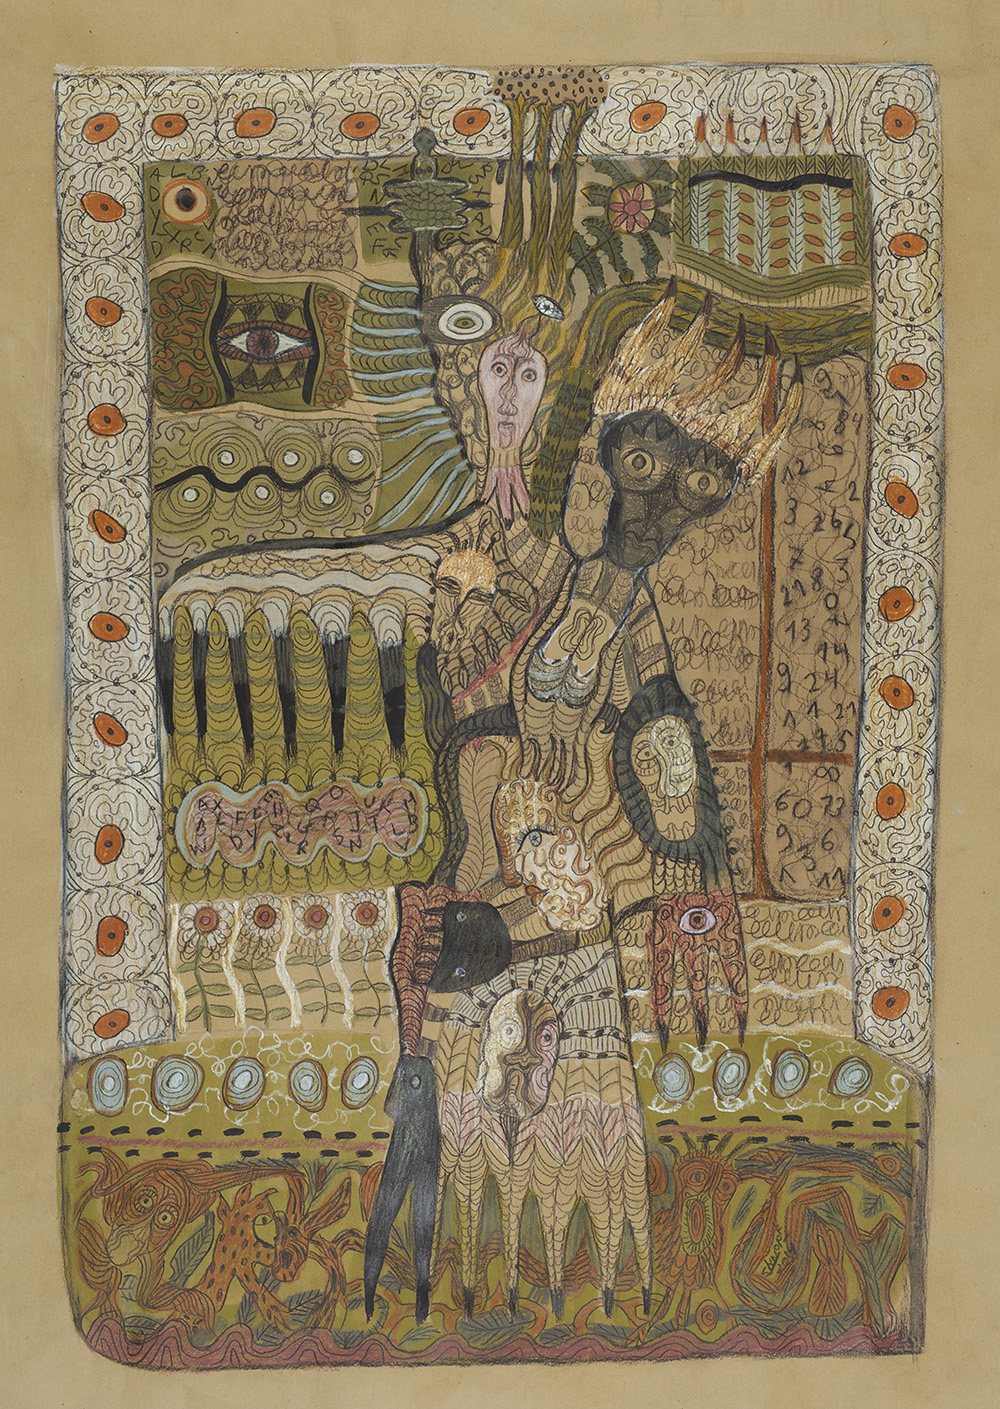 Solange Knopf    Iboga  , 2014 Acrylic, colored pencil, and graphite on Kraft paper 27.5 x 19.5 inches 69.9 x 49.5 cm SoK 70